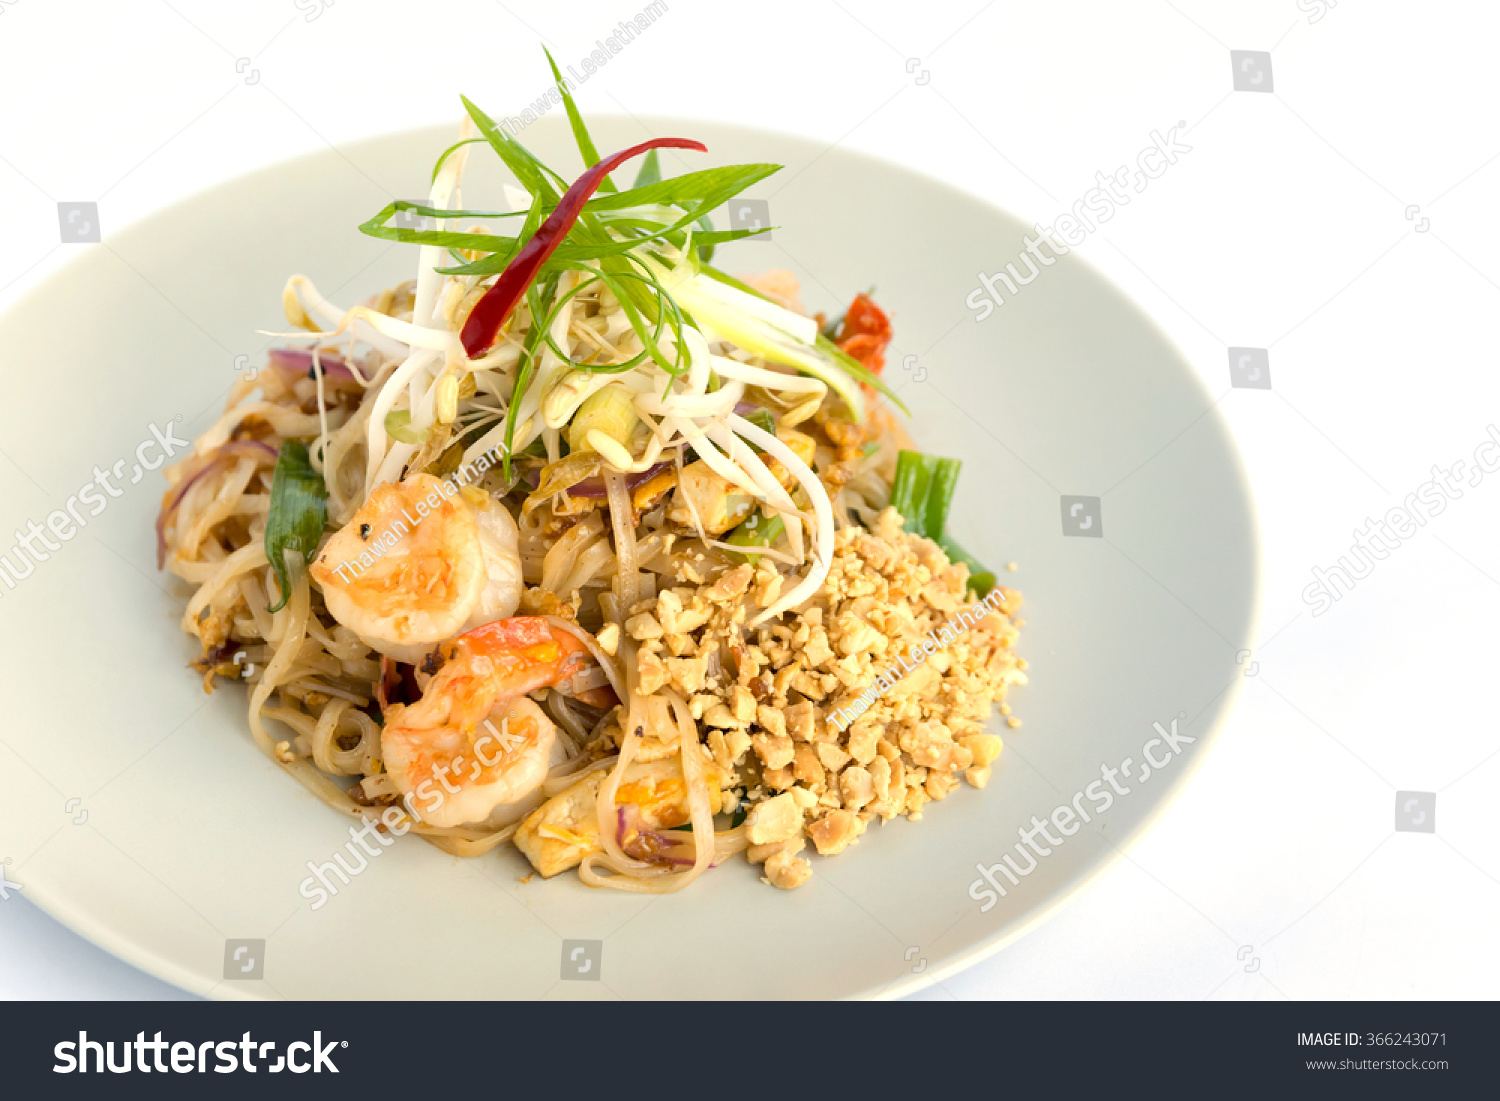 Thai Traditional Food Stirfried Rice Noodles Stock Photo ...